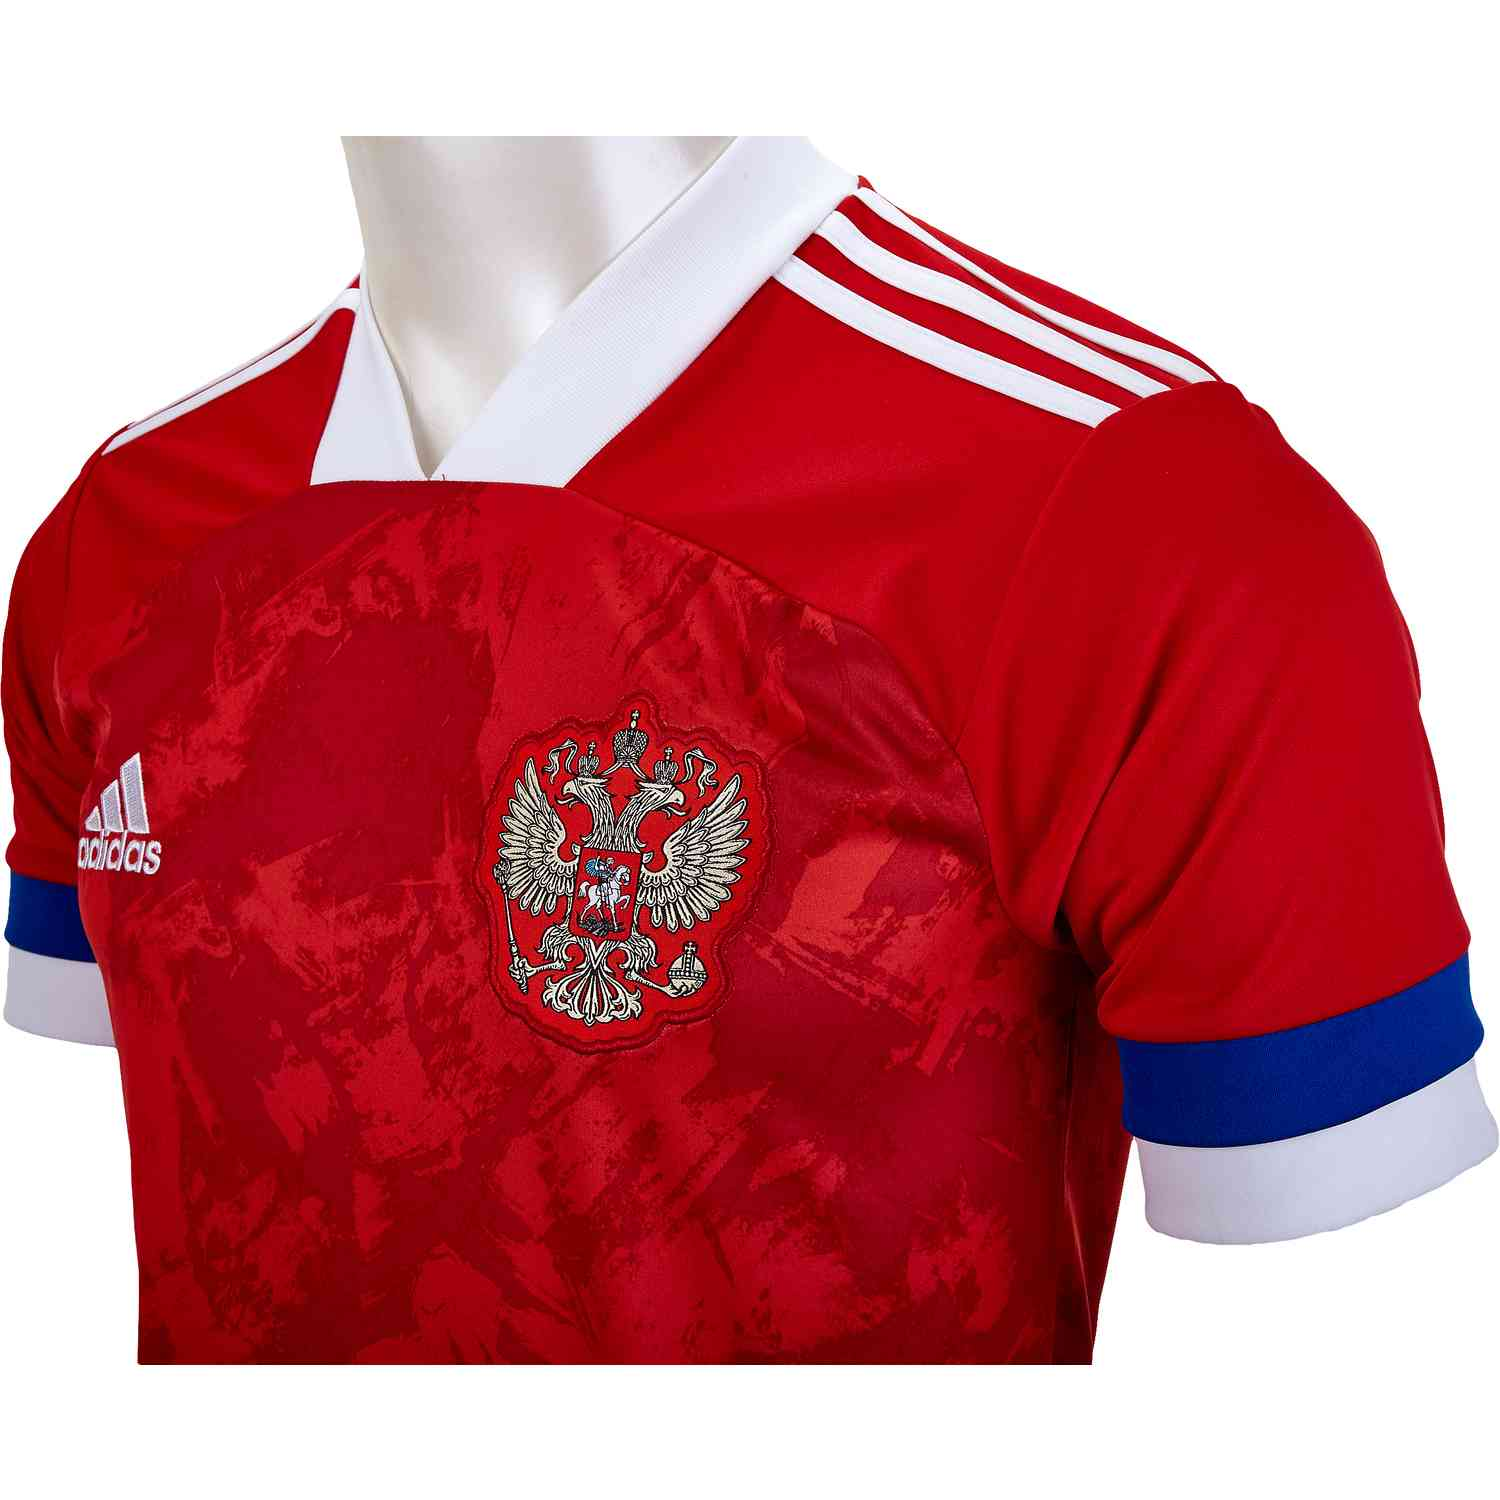 2020 adidas Russia Home Jersey